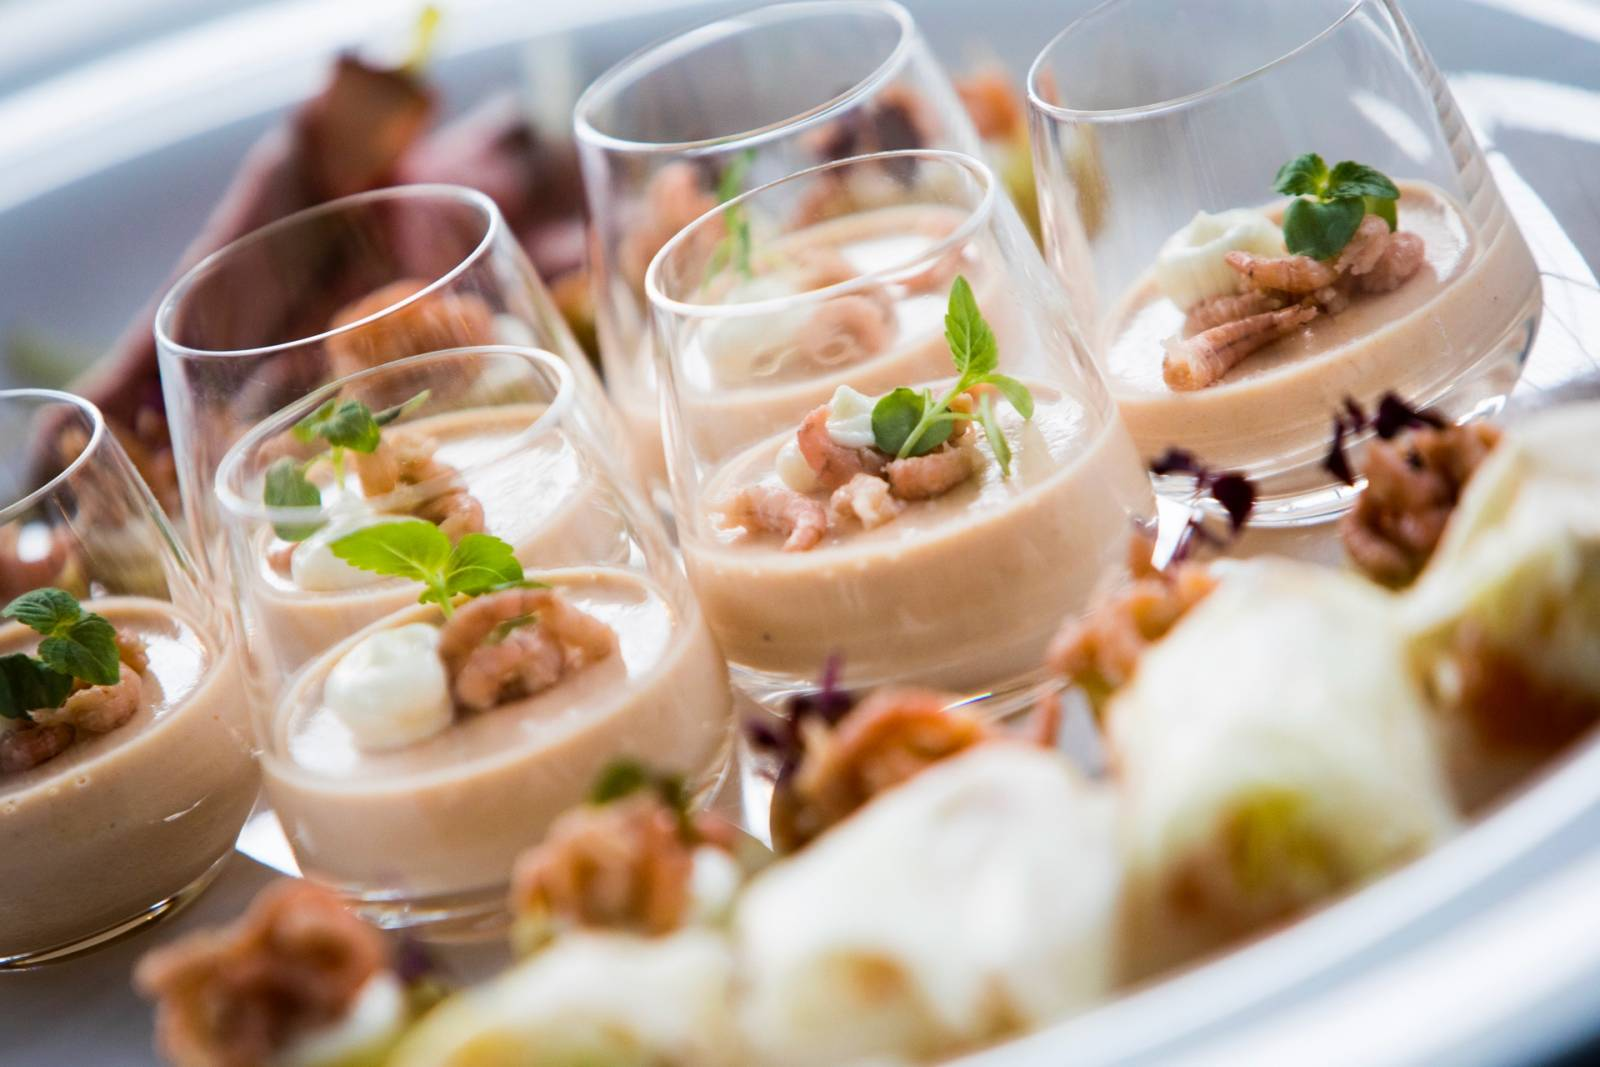 Cuisine Catering - Catering - Traiteur – House of Weddings - 14